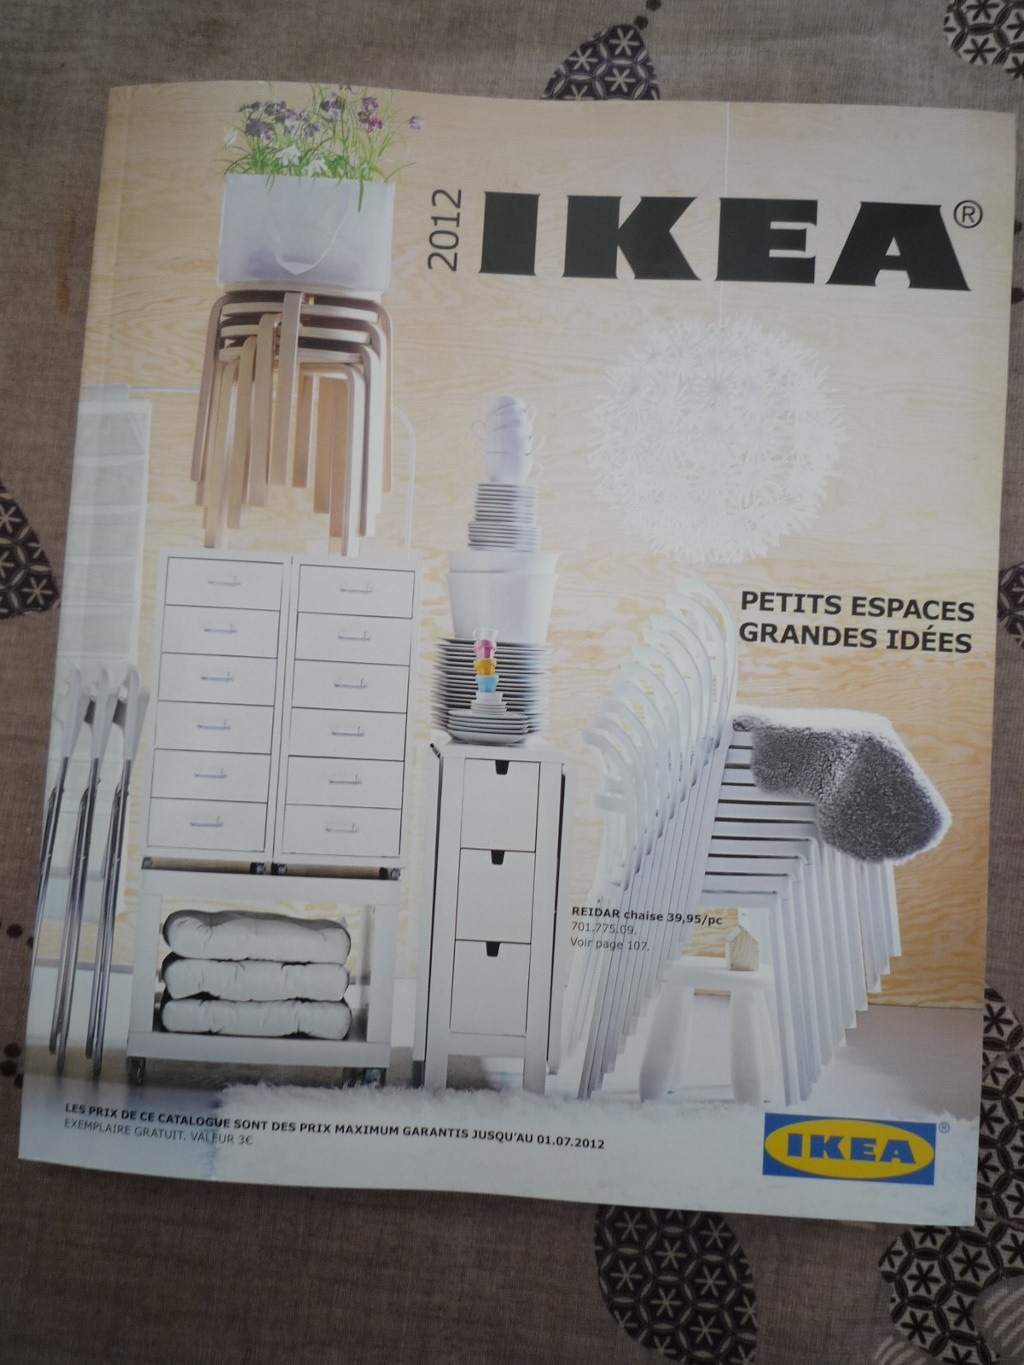 le nouveau catalogue ikea 2012 est l ikeaddict. Black Bedroom Furniture Sets. Home Design Ideas